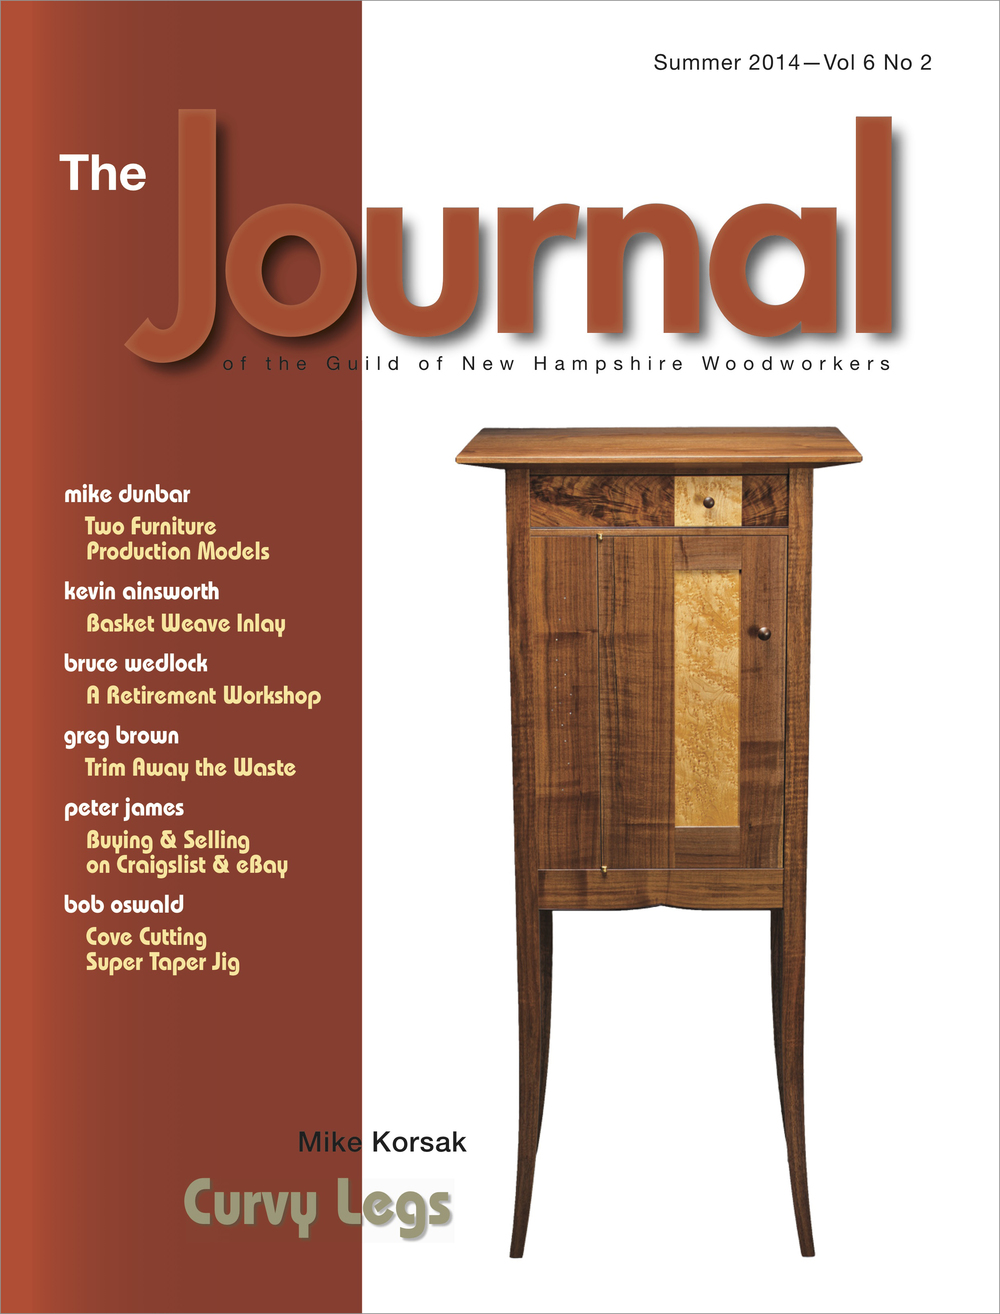 the cover of the journal, which features a woodworking article written by mike